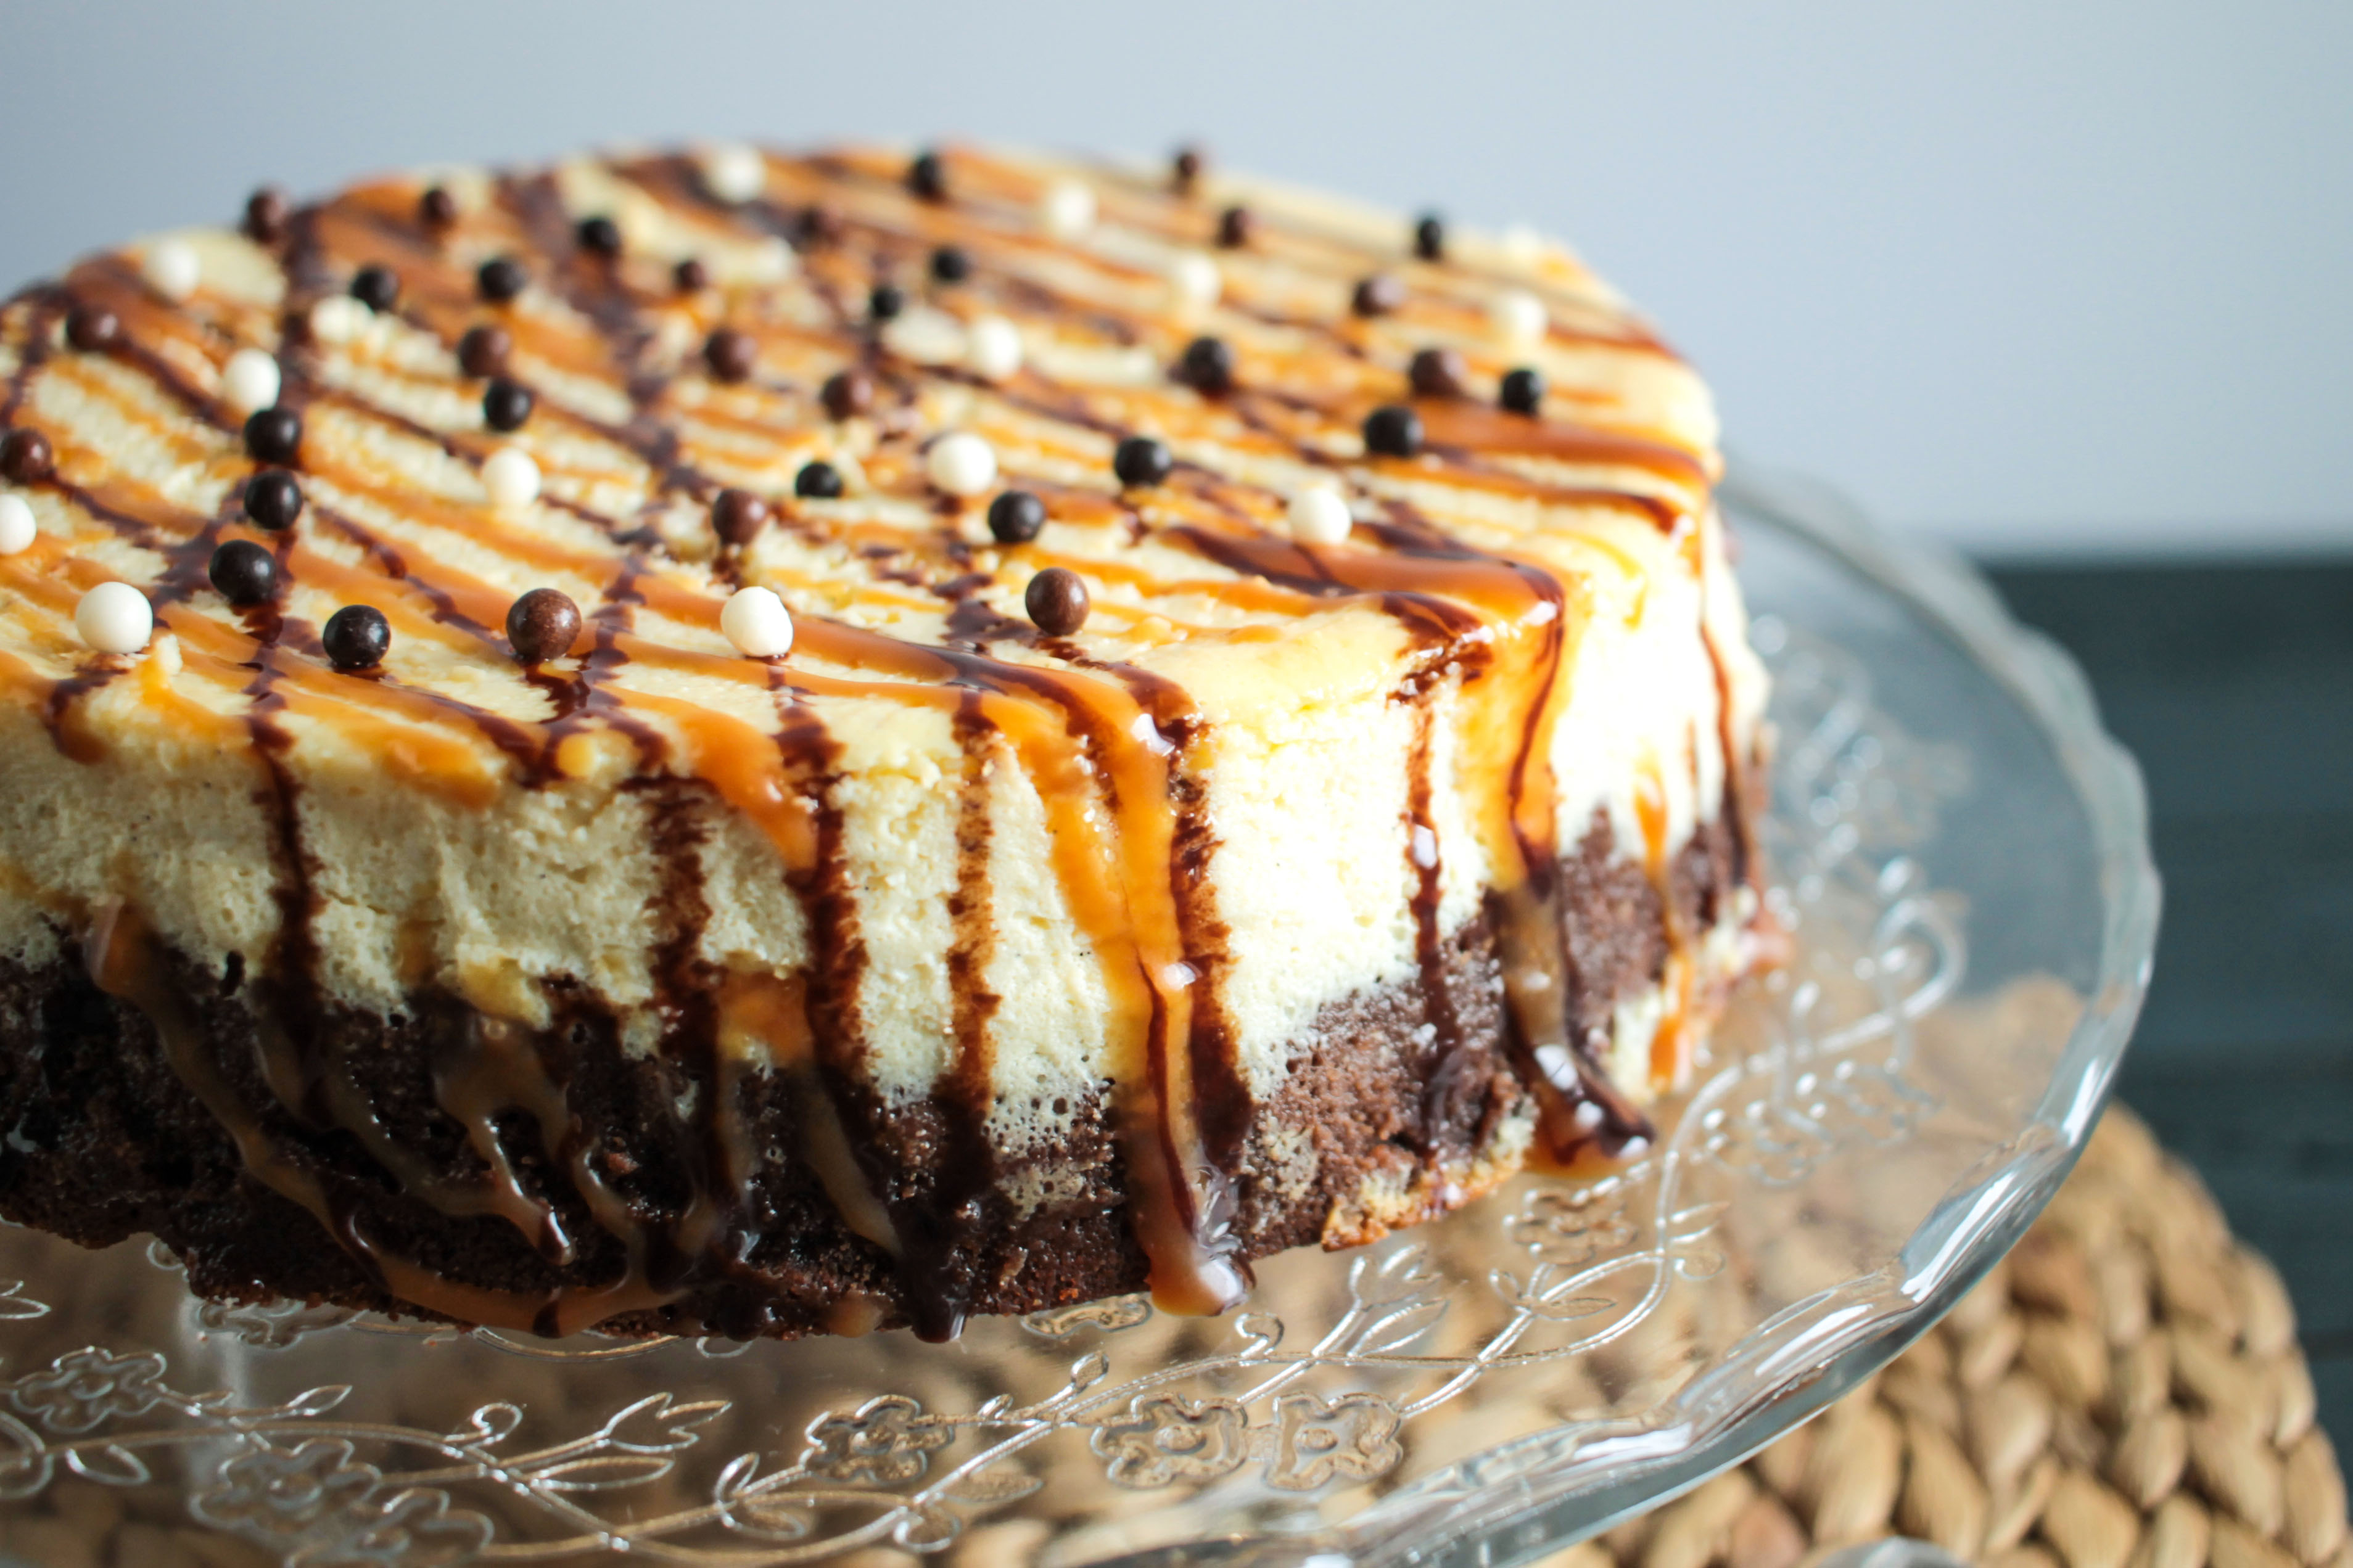 Cheesecake base brownie, caramel au beurre salé et chocolat